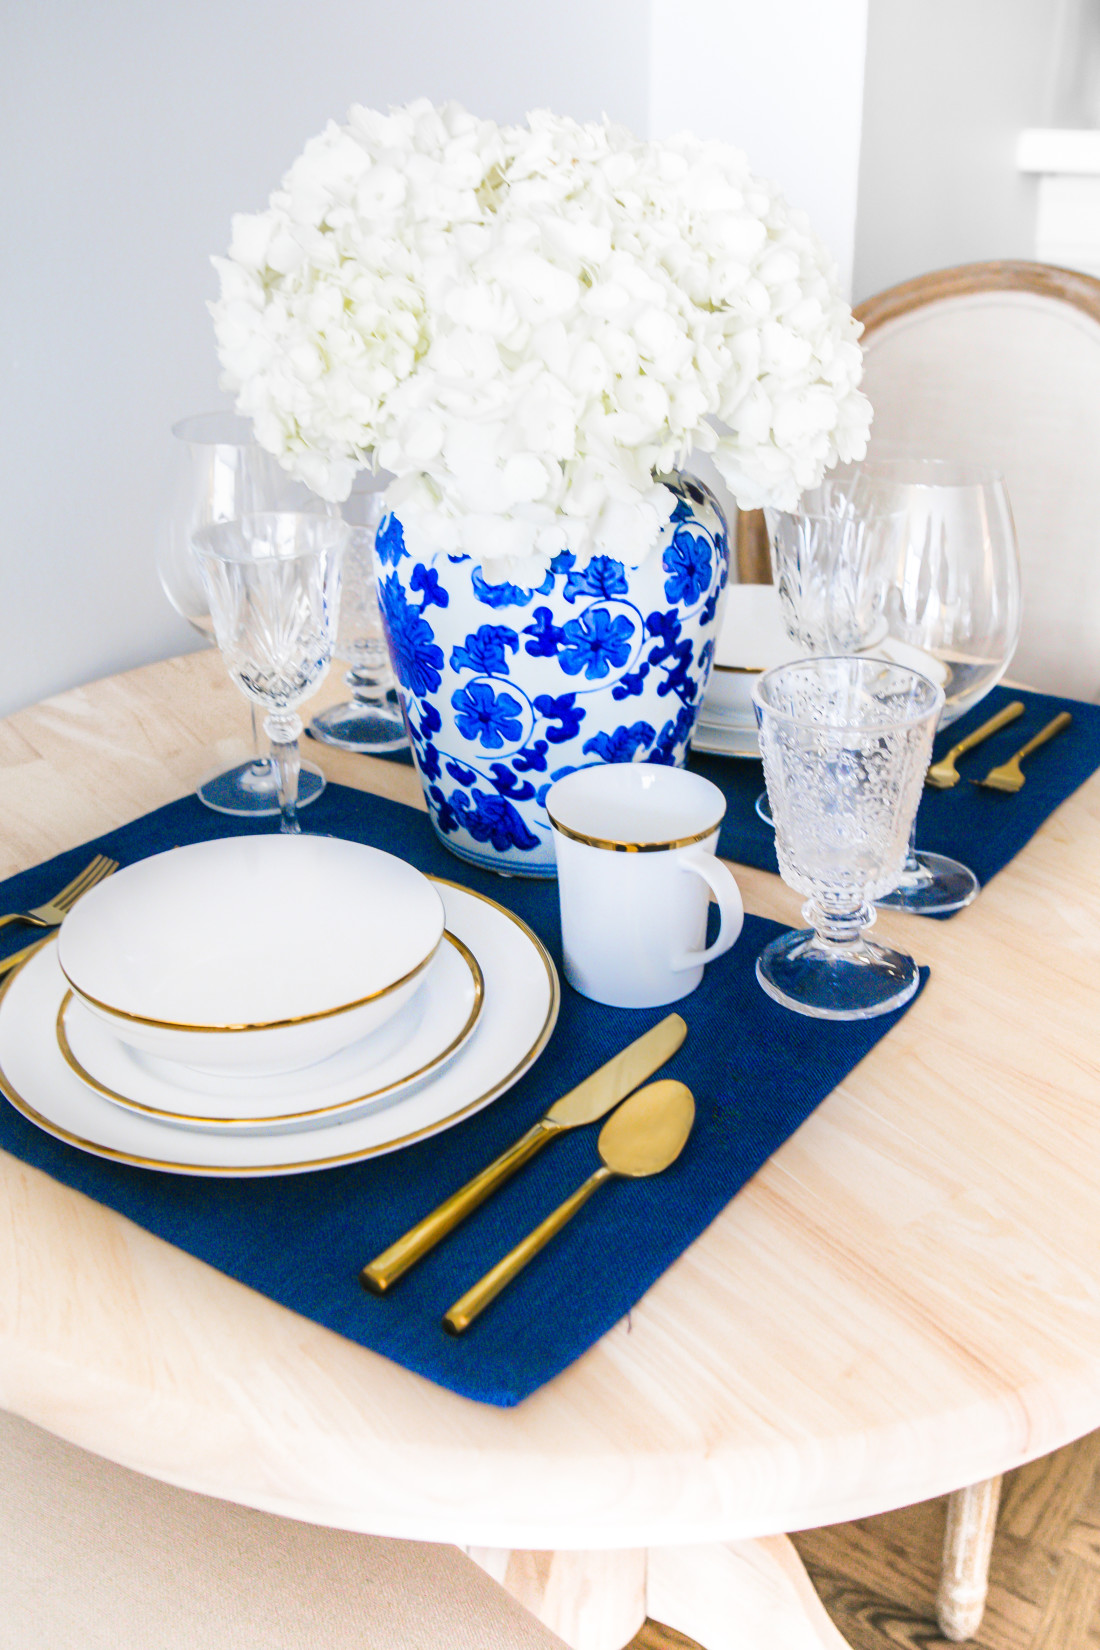 Blue-And-White-Ginger-Jar-Blue-Placemats